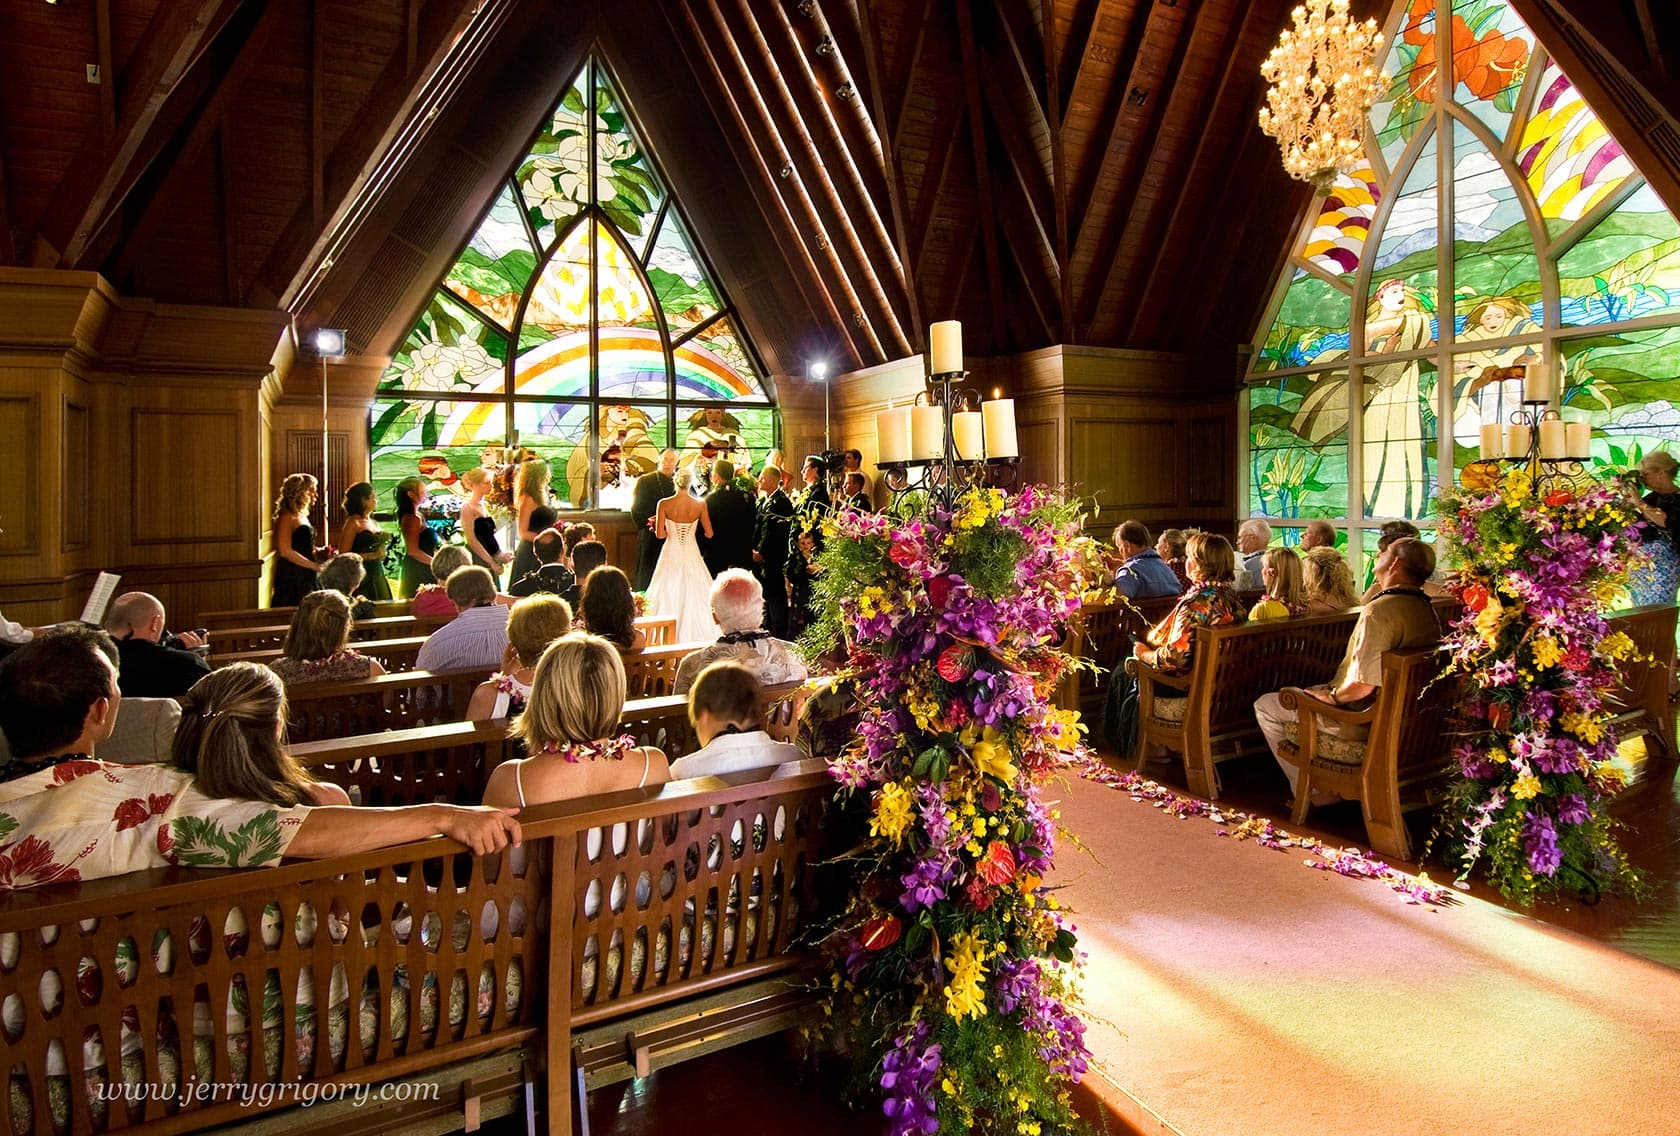 chapel-wedding-ceremony-interior-1680x1136.jpg